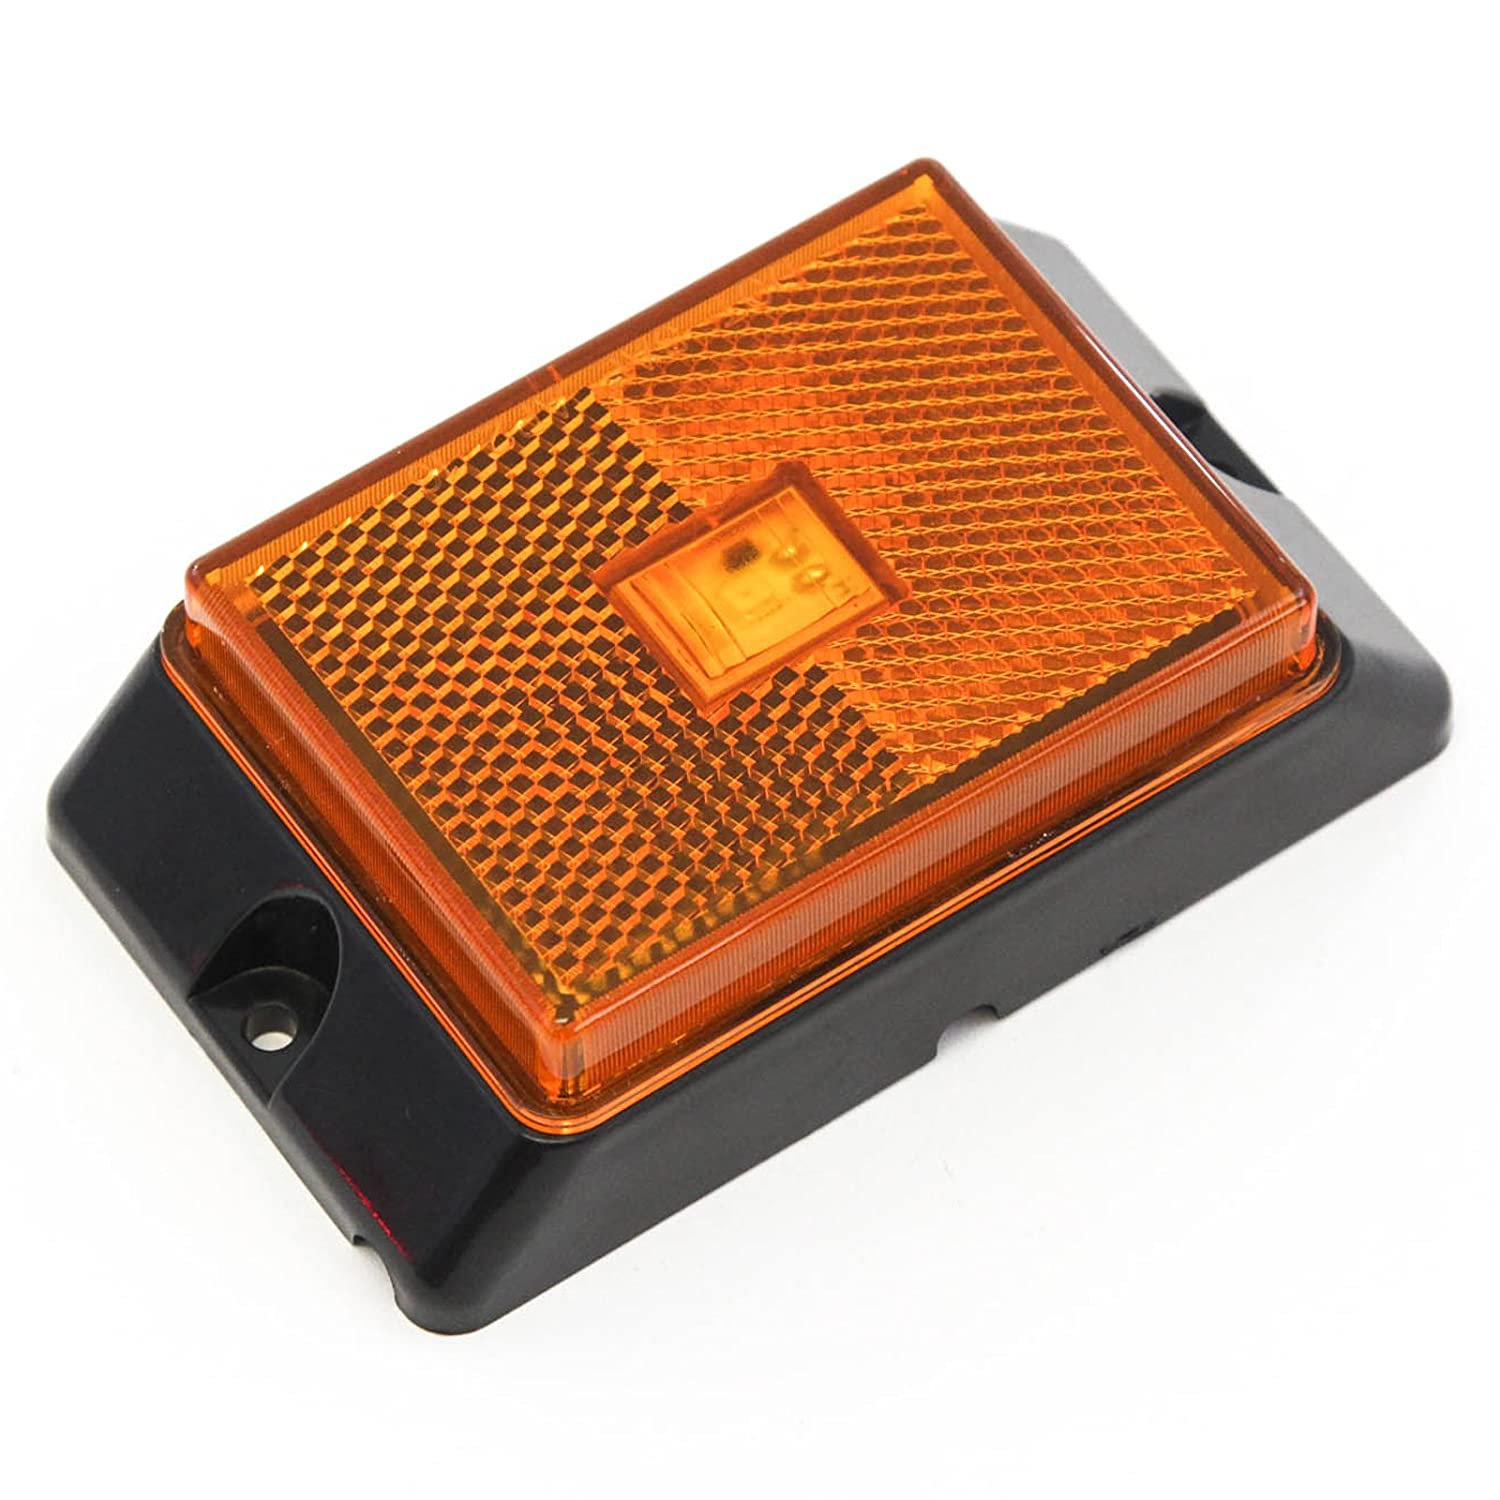 Red Hound Auto 1 Amber LED Side Marker Light 4 Truck Trailer Pickup Boat Bright